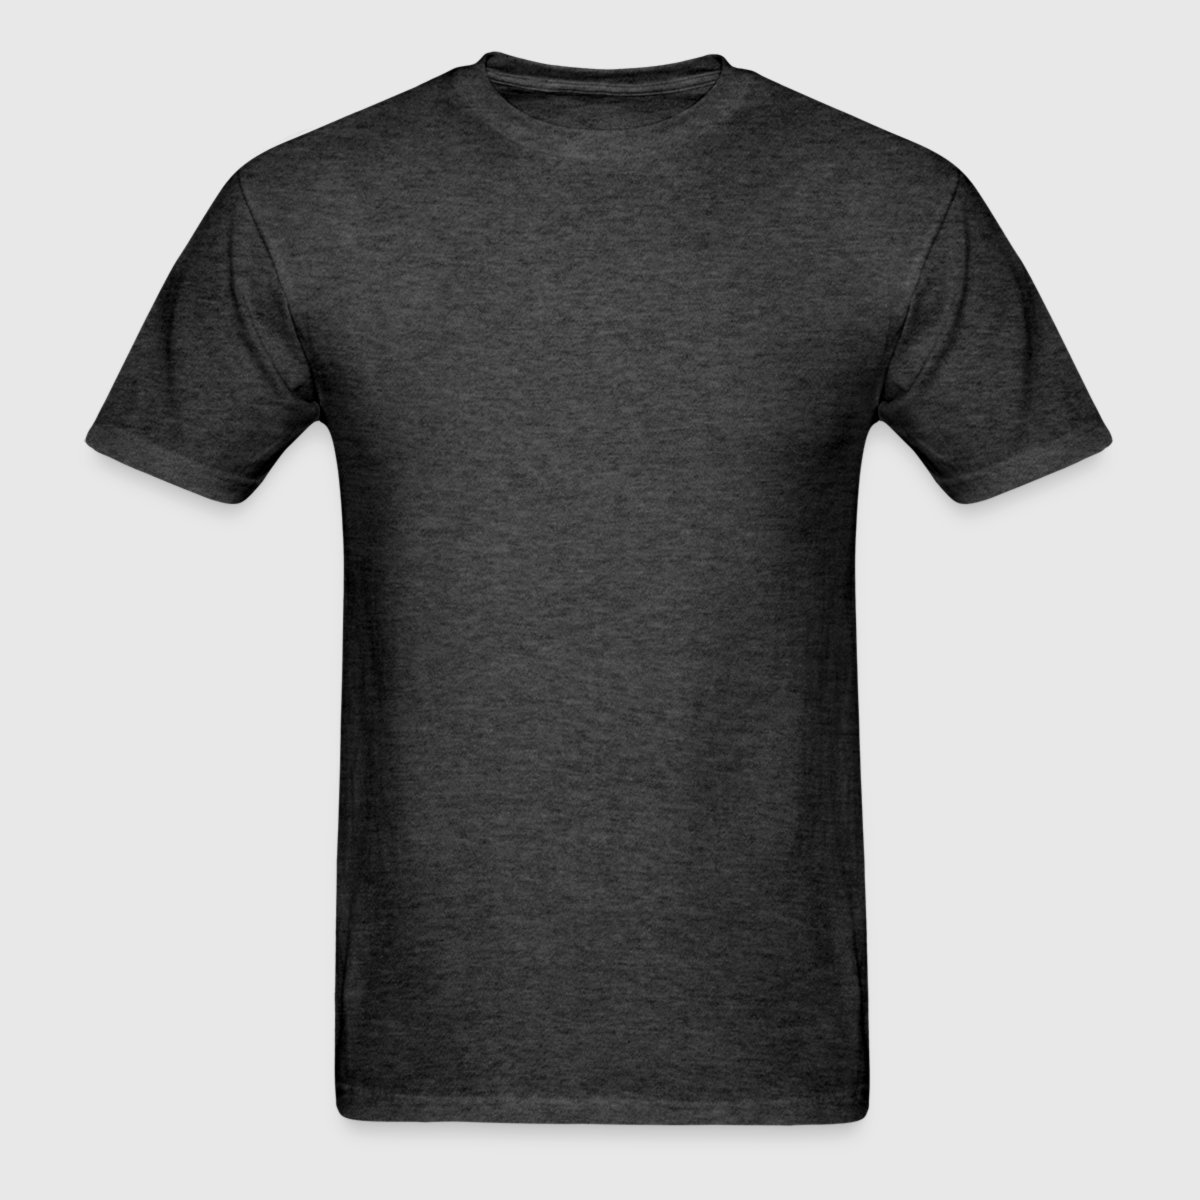 Personalized men 39 s t shirt spreadshirt for Make photo t shirt online